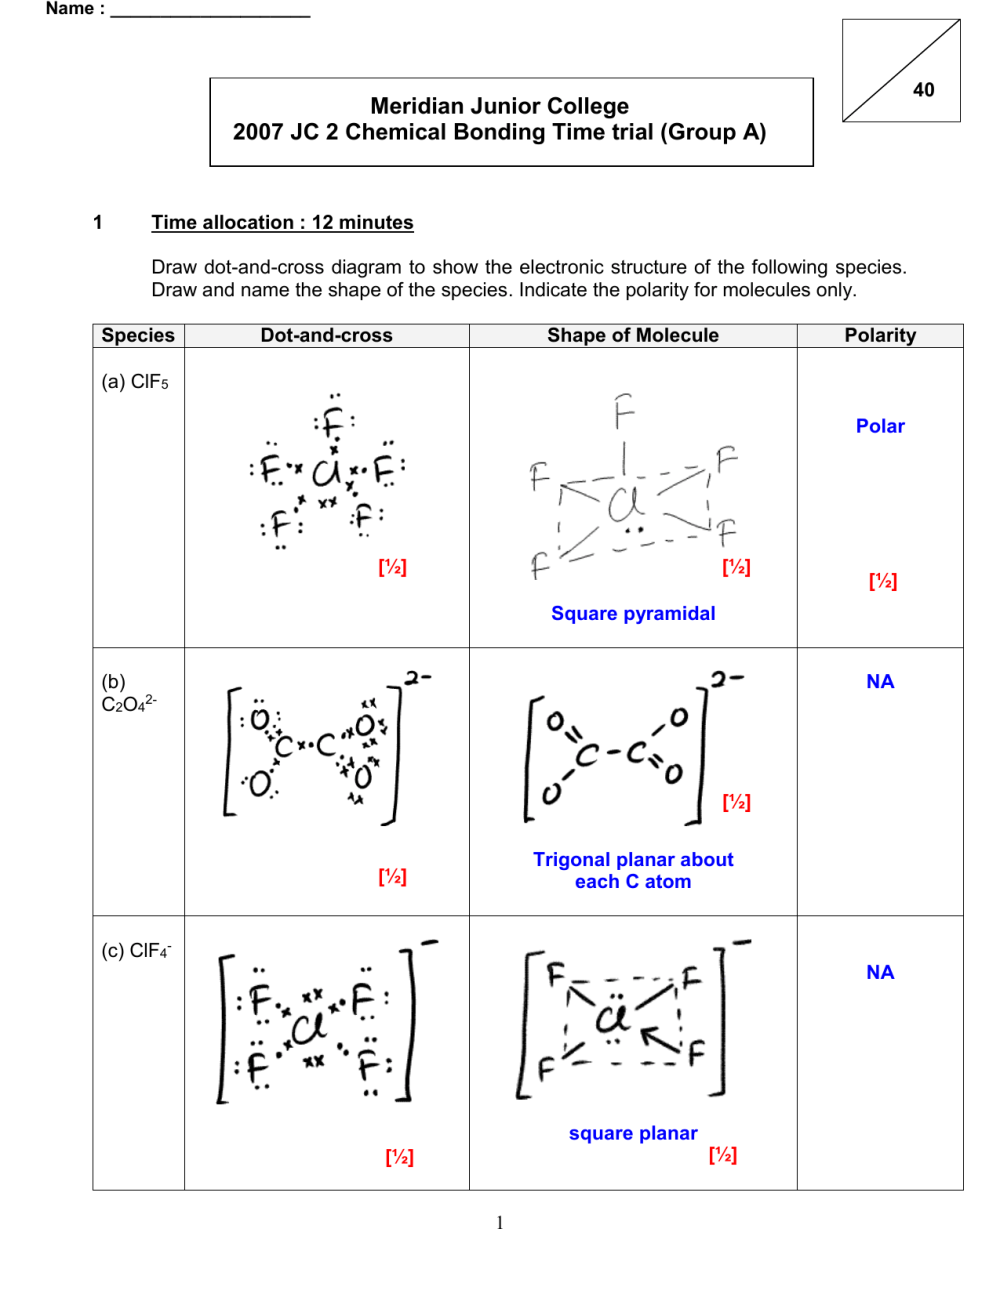 medium resolution of jc2 chemical bonding time trial soln dot and cross diagram of h2o2